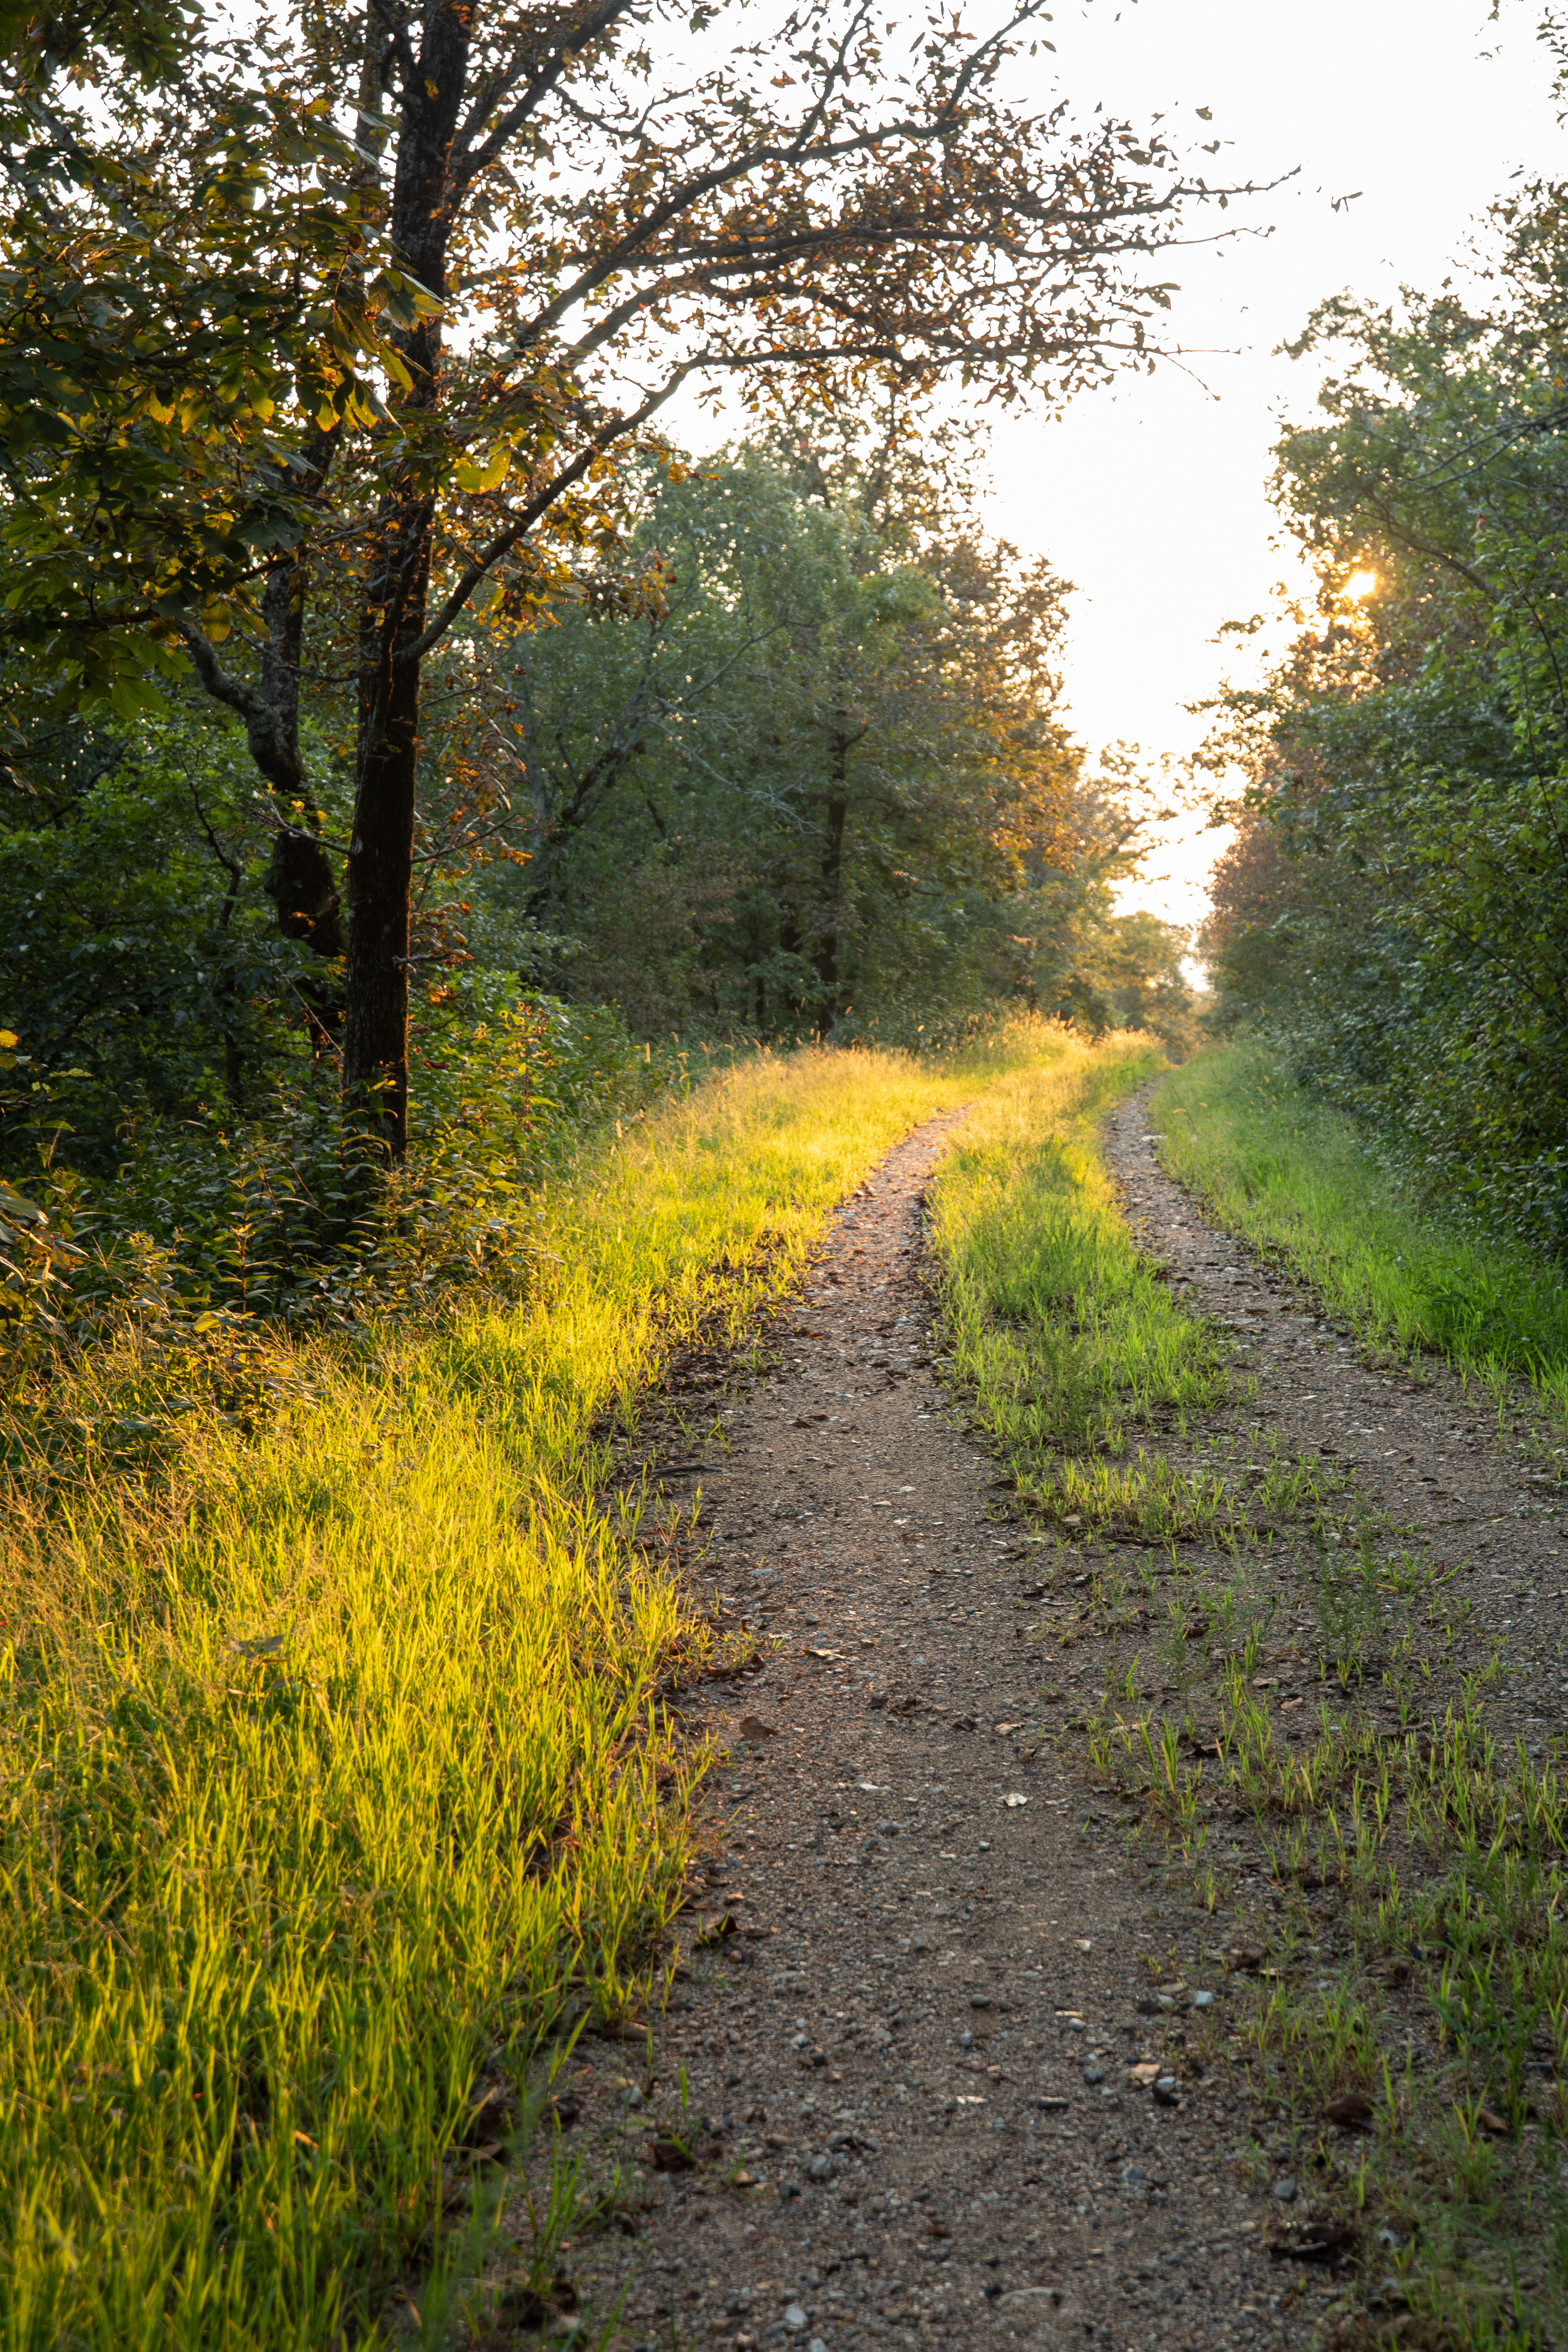 The road to the fire tower in the morning light